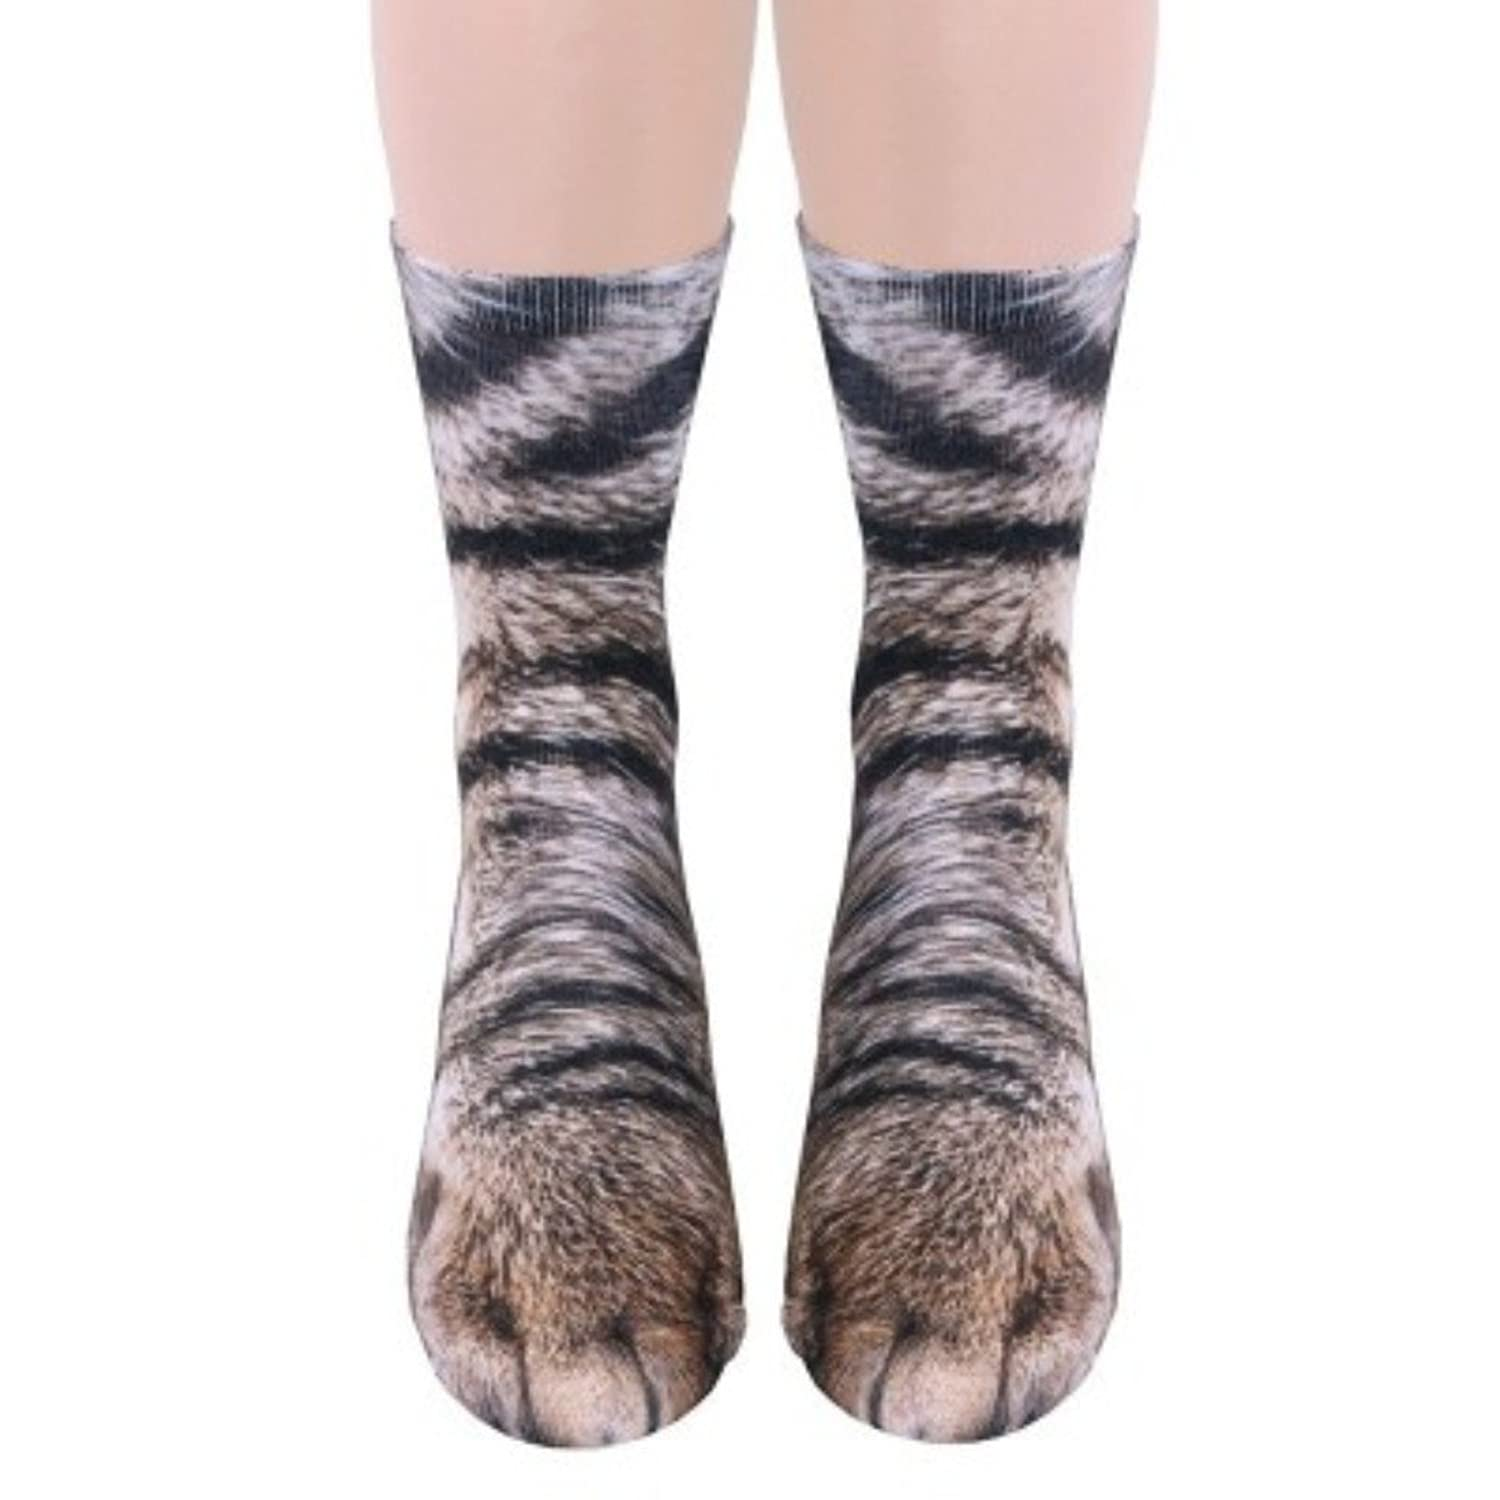 c68884542 Top 10 wholesale Animal Brand - Chinabrands.com